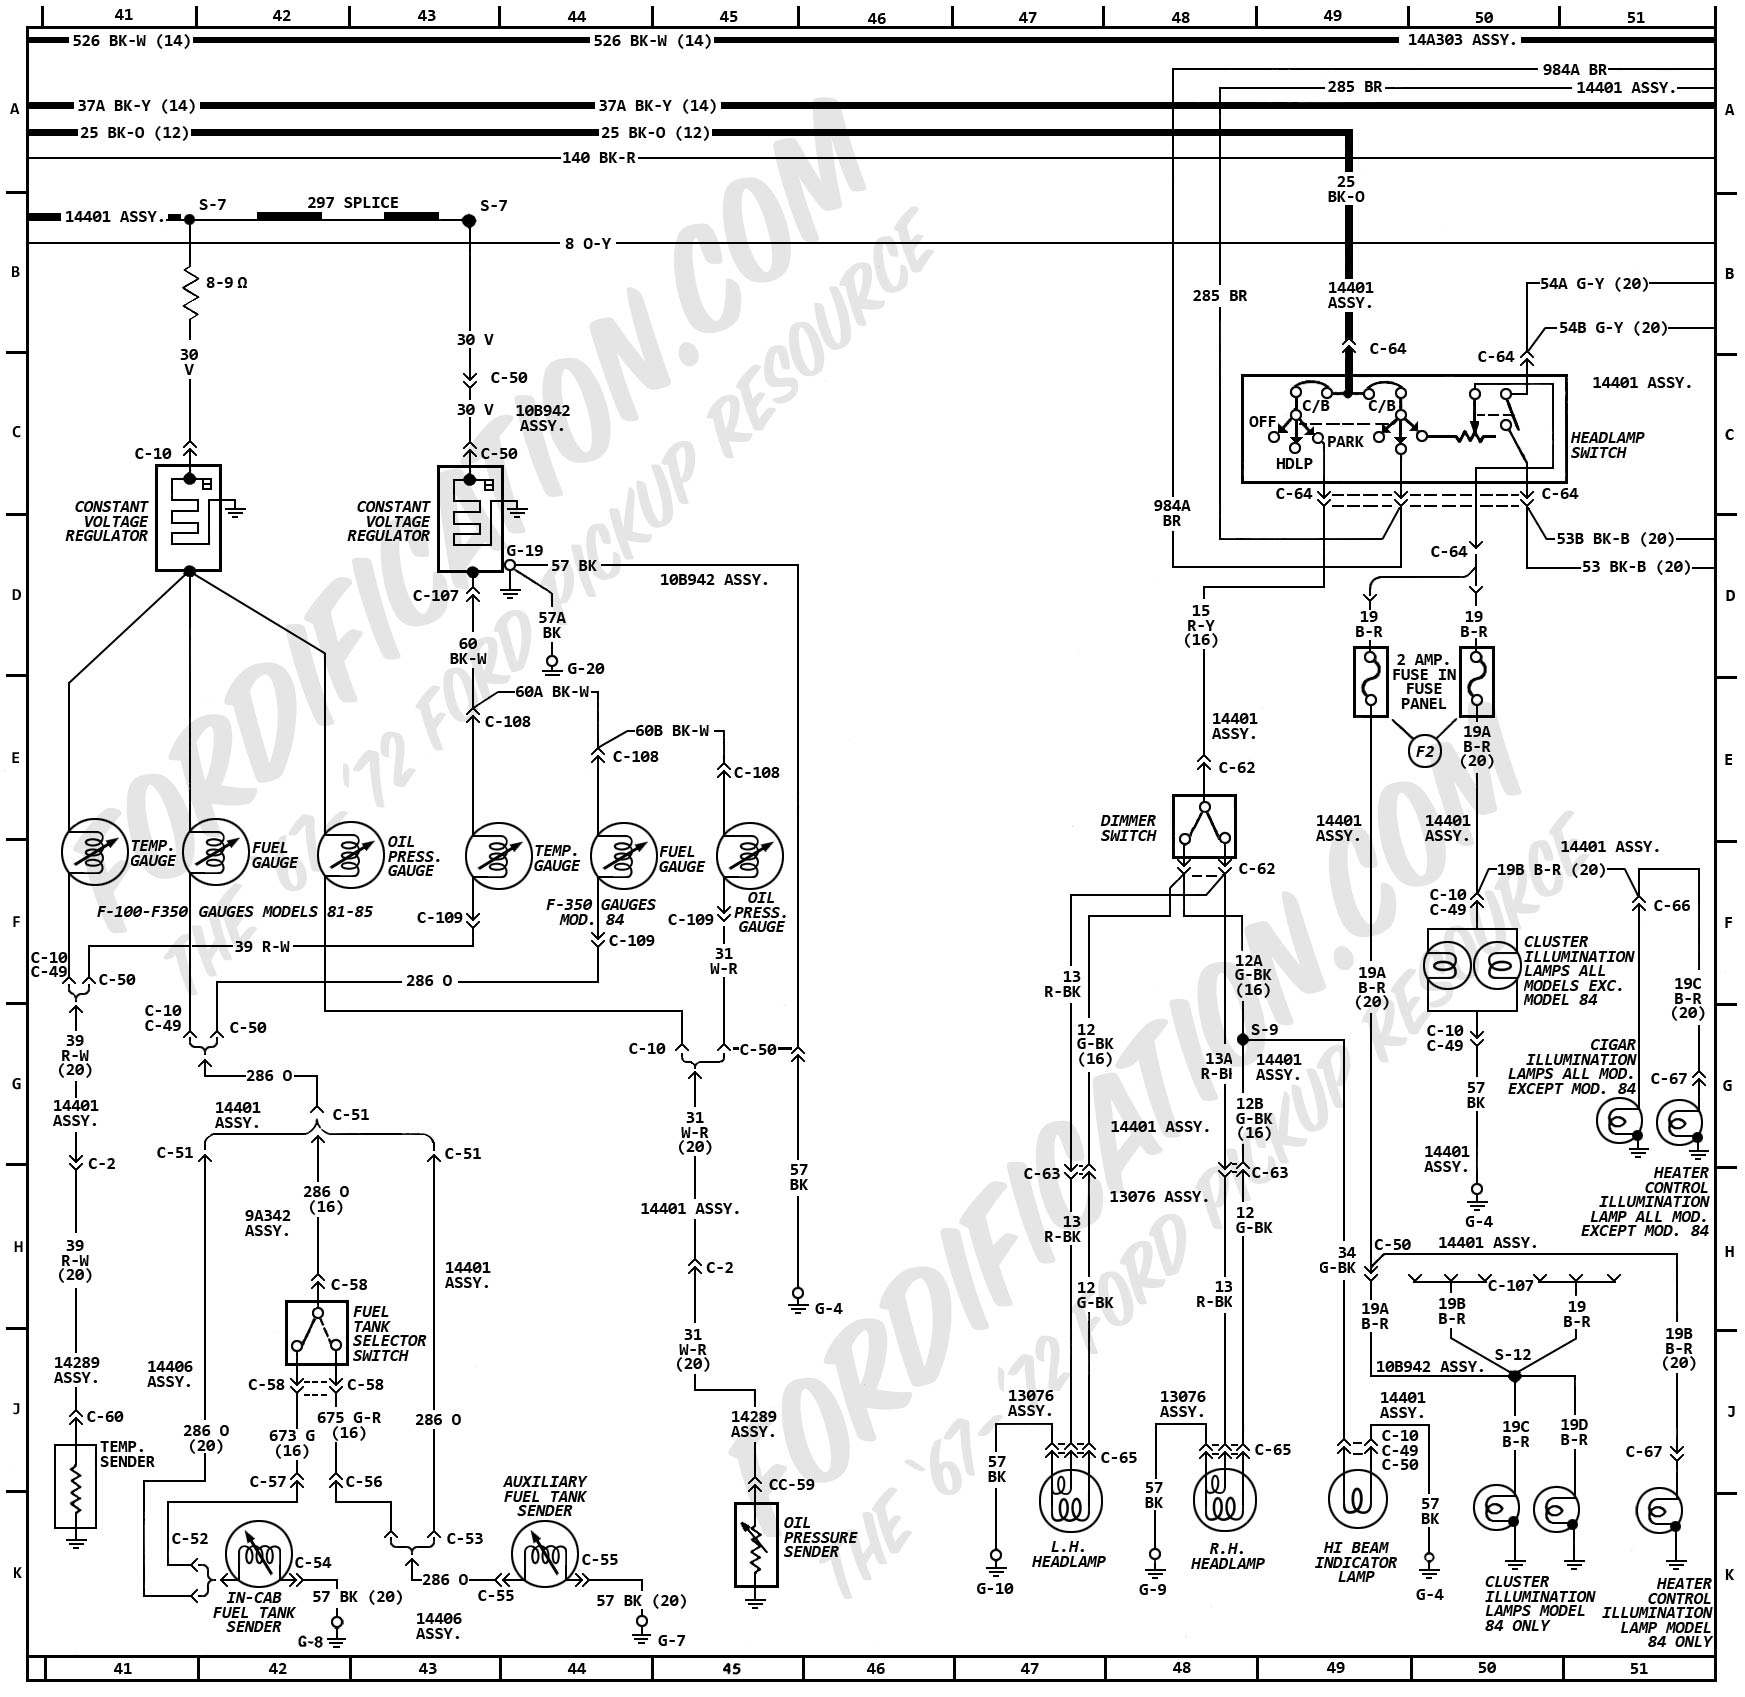 1991 ford l8000 wiring diagram ford l8000 wiring diagram for heater